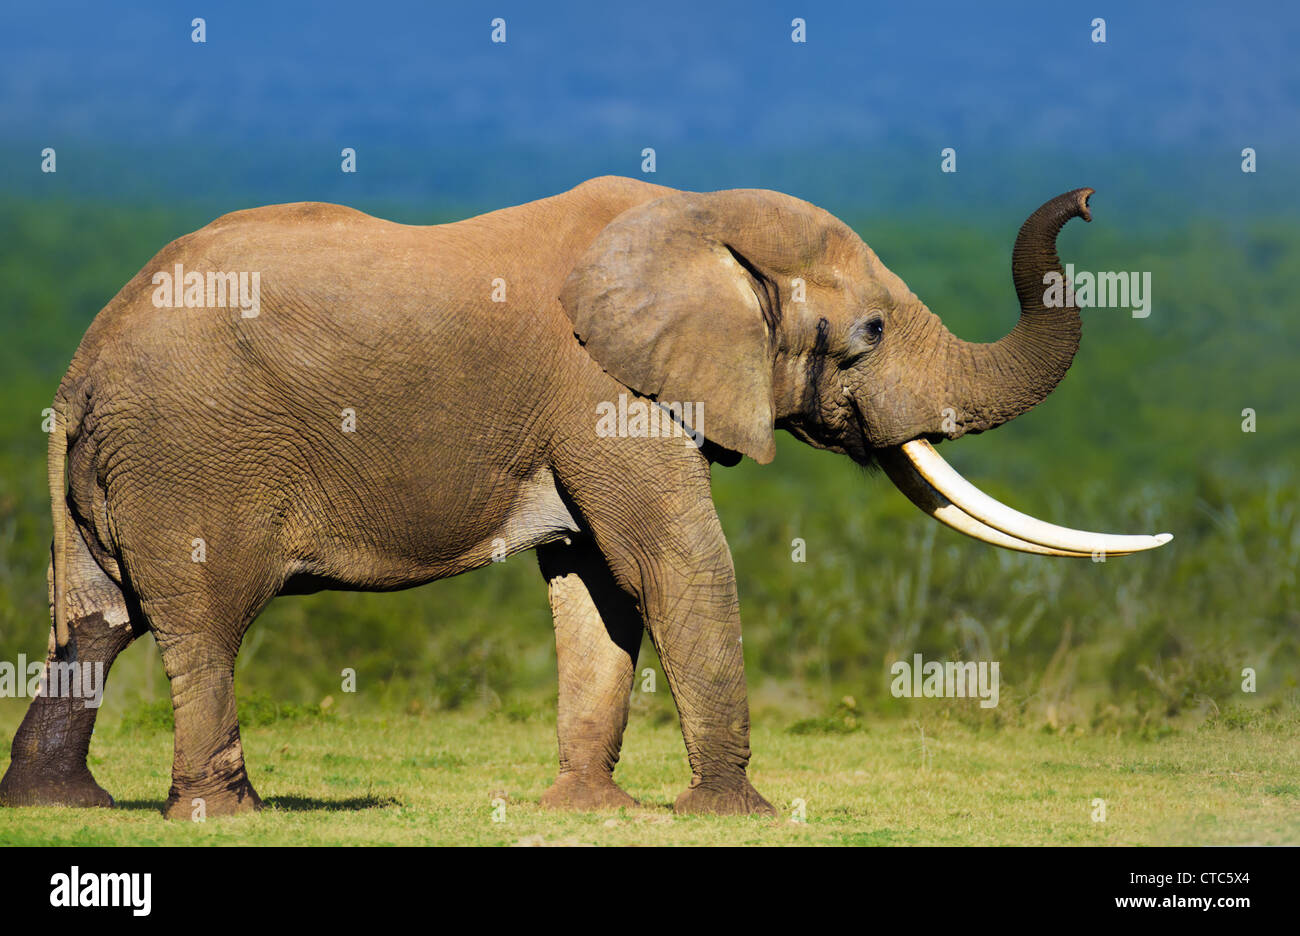 Elephant avec de grandes défenses qui sent l'air - Addo National Park - Afrique du Sud Photo Stock